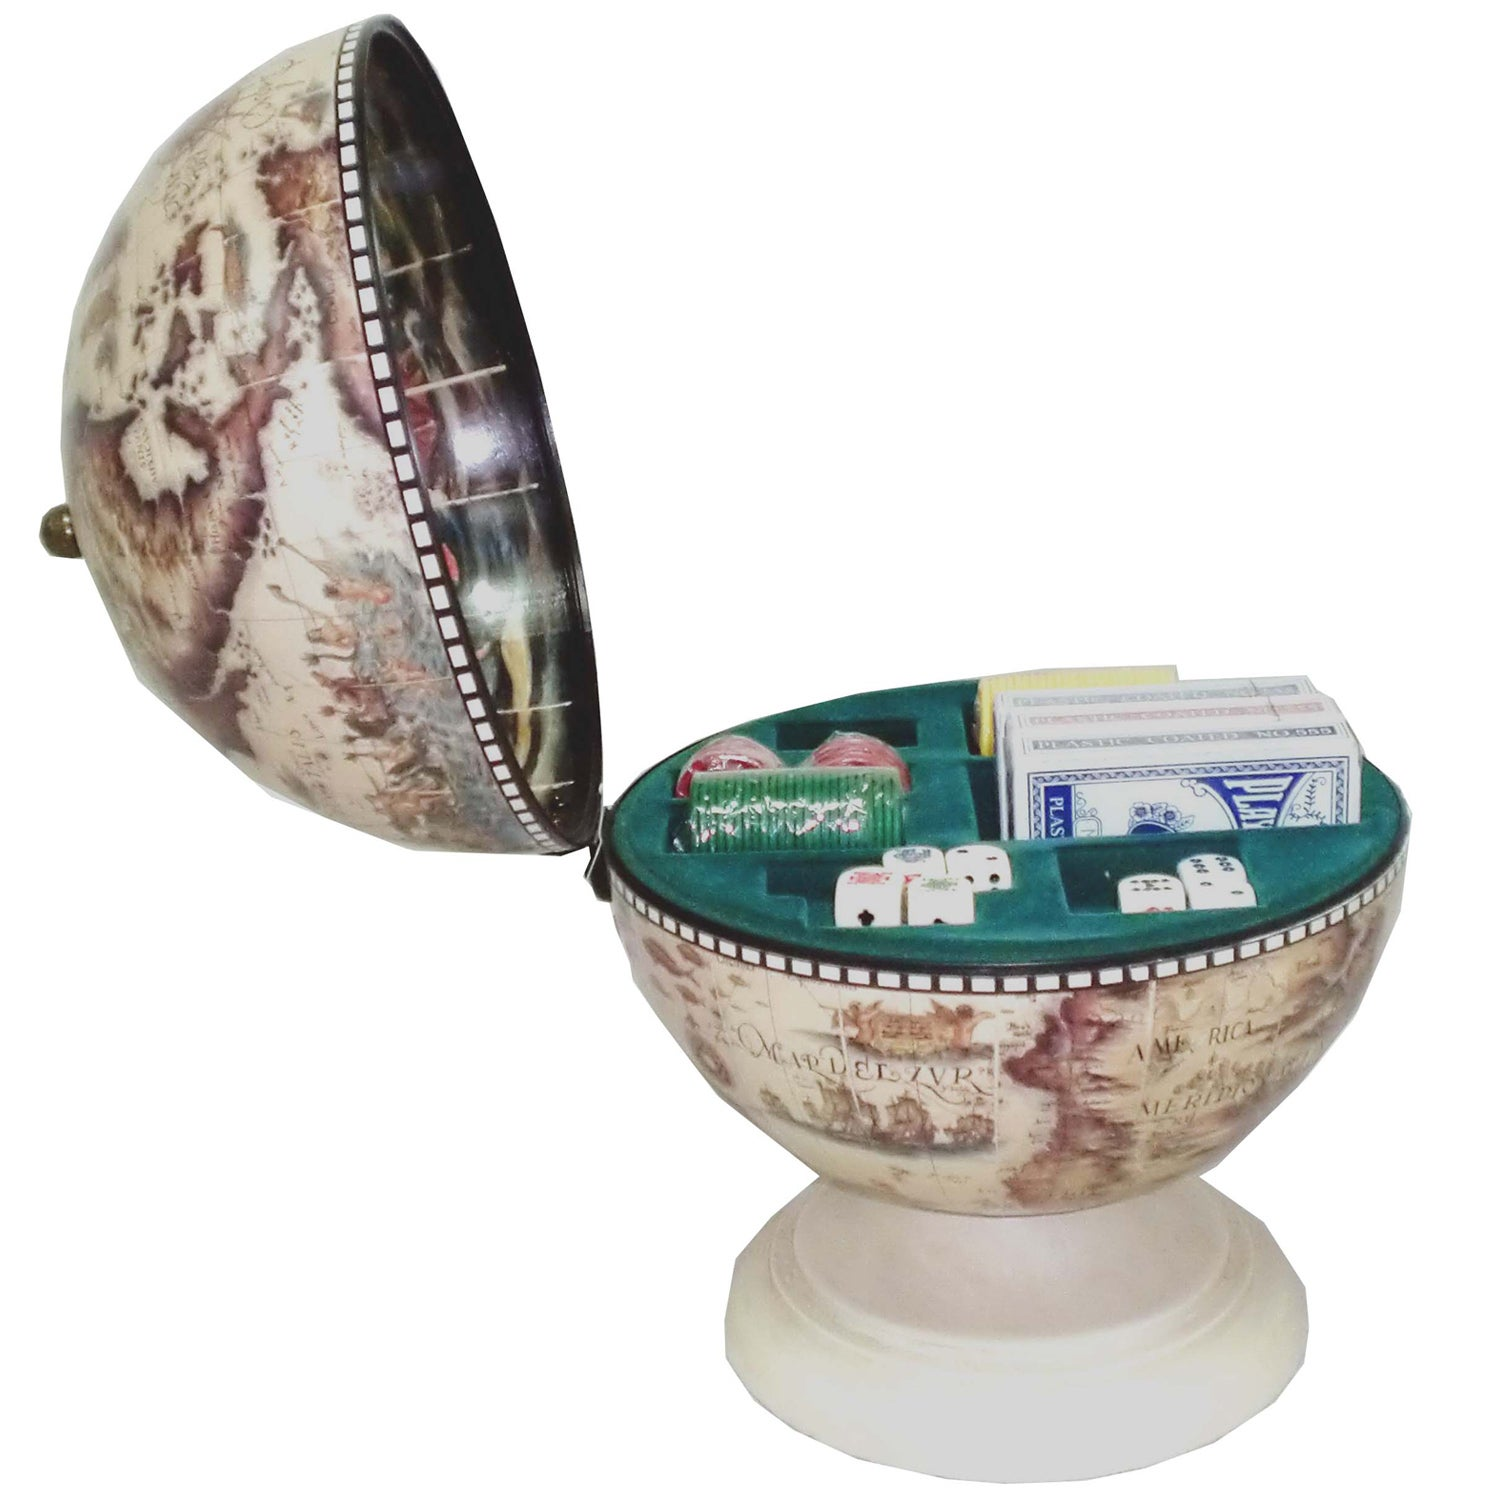 Gallery Playing Card, Dice and Poker Chip Storage Globe